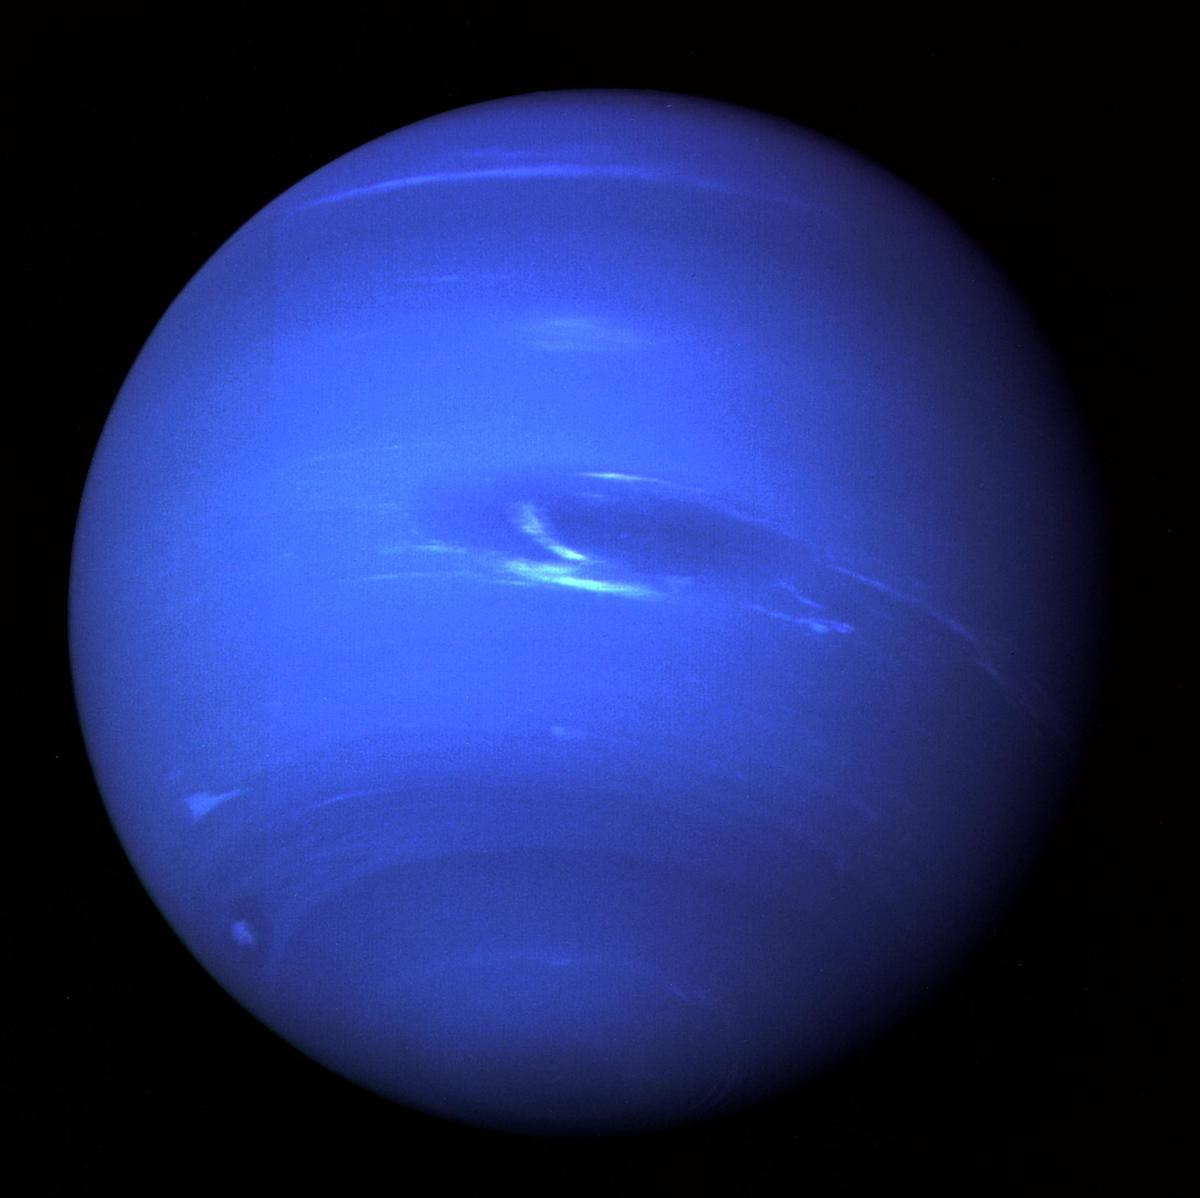 The giant blue gas planet Neptune, photographed by the Voyager mission